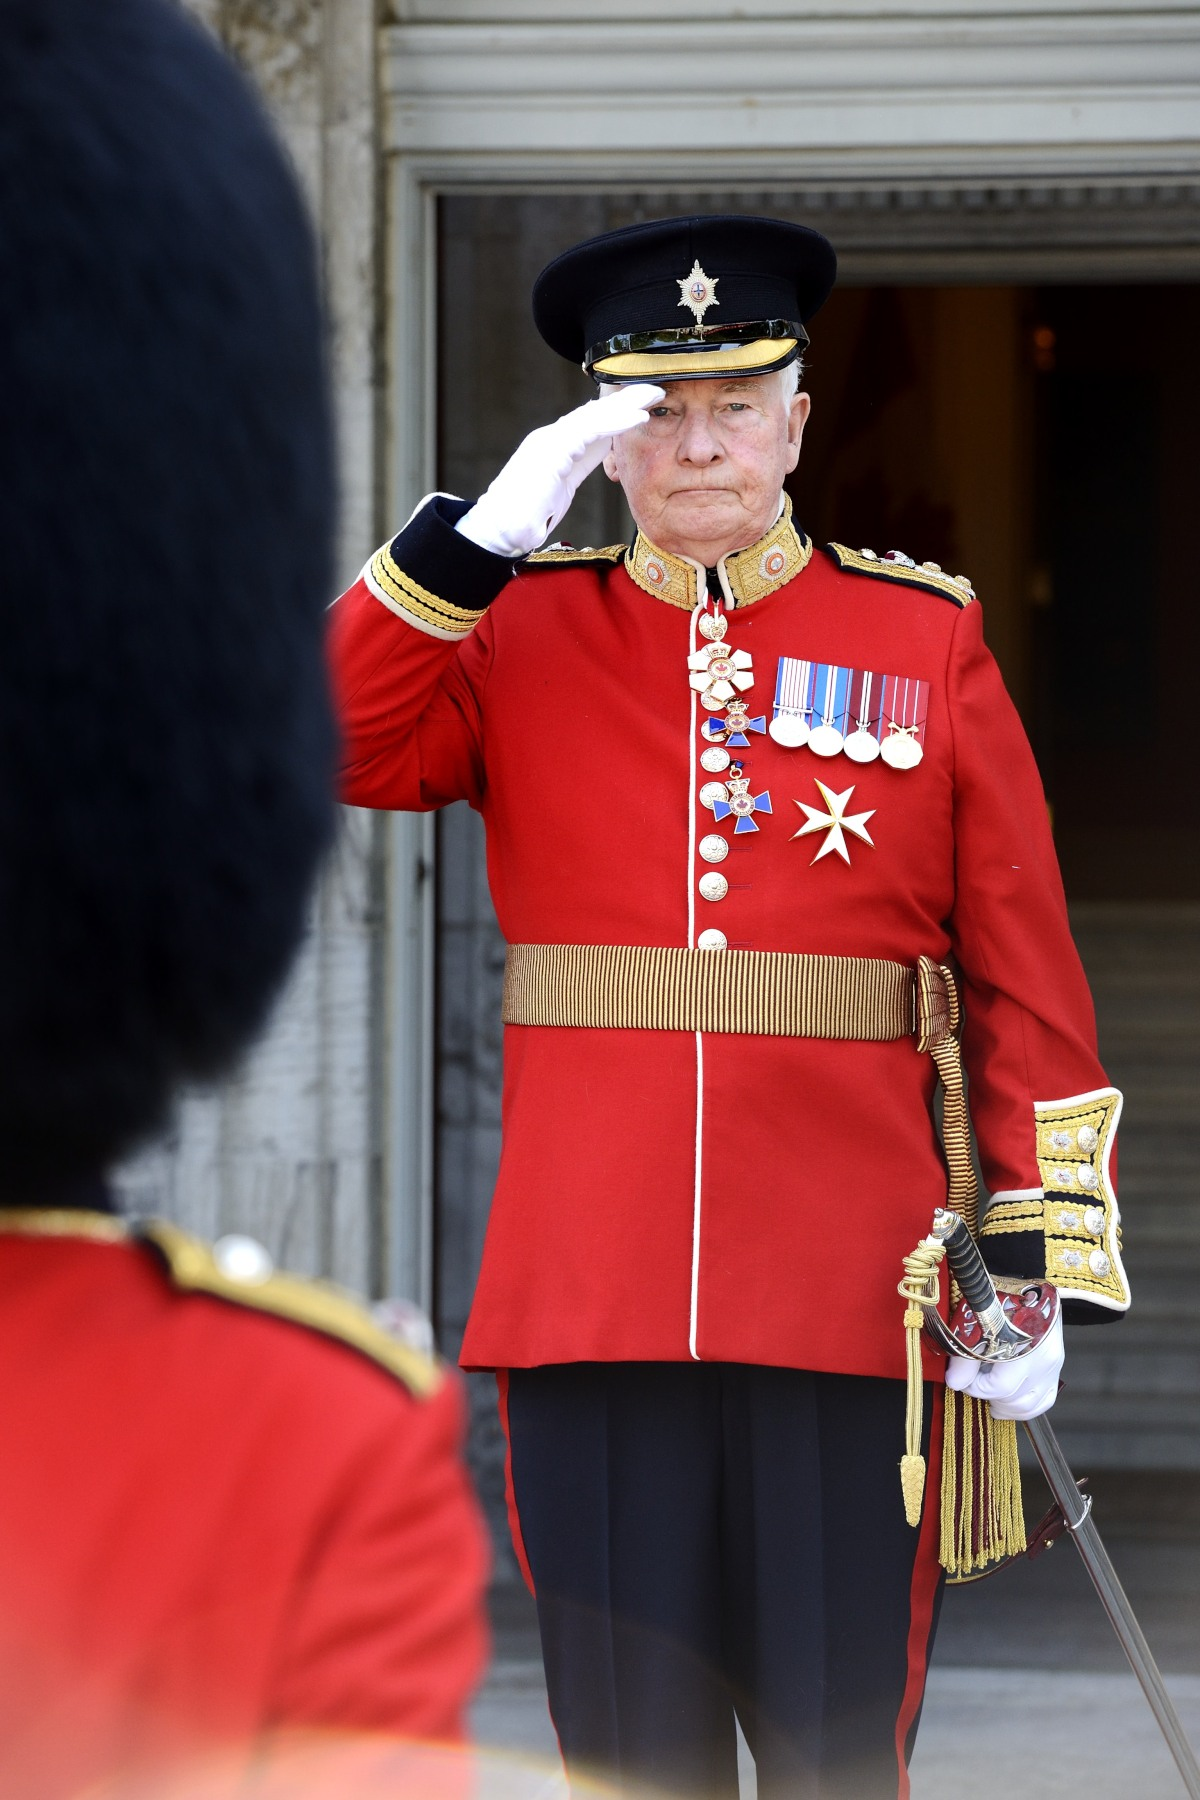 The governor general is commander-in-chief of Canada. This role has been expressly conferred on the governor general as per the Letters Patent Constituting the Office of Governor General and Commander-in-Chief of Canada (1947). As such, the governor general plays a major role in recognizing the importance of Canada's military at home and abroad.